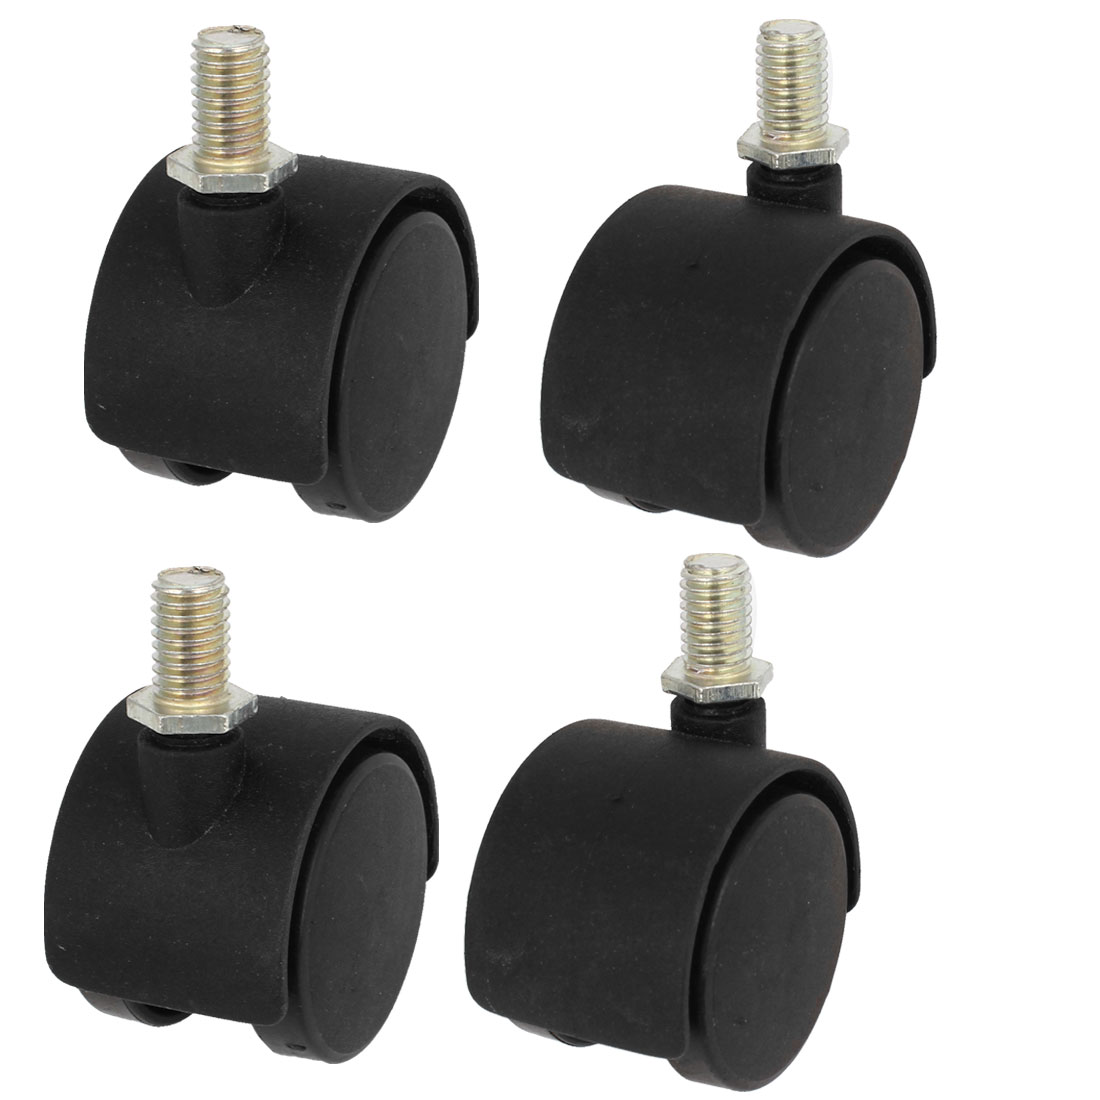 "Plastic 10mm Screw Stem 1.5"" Dia Dual Wheel Furniture Swivel Caster Black 4 Pcs"